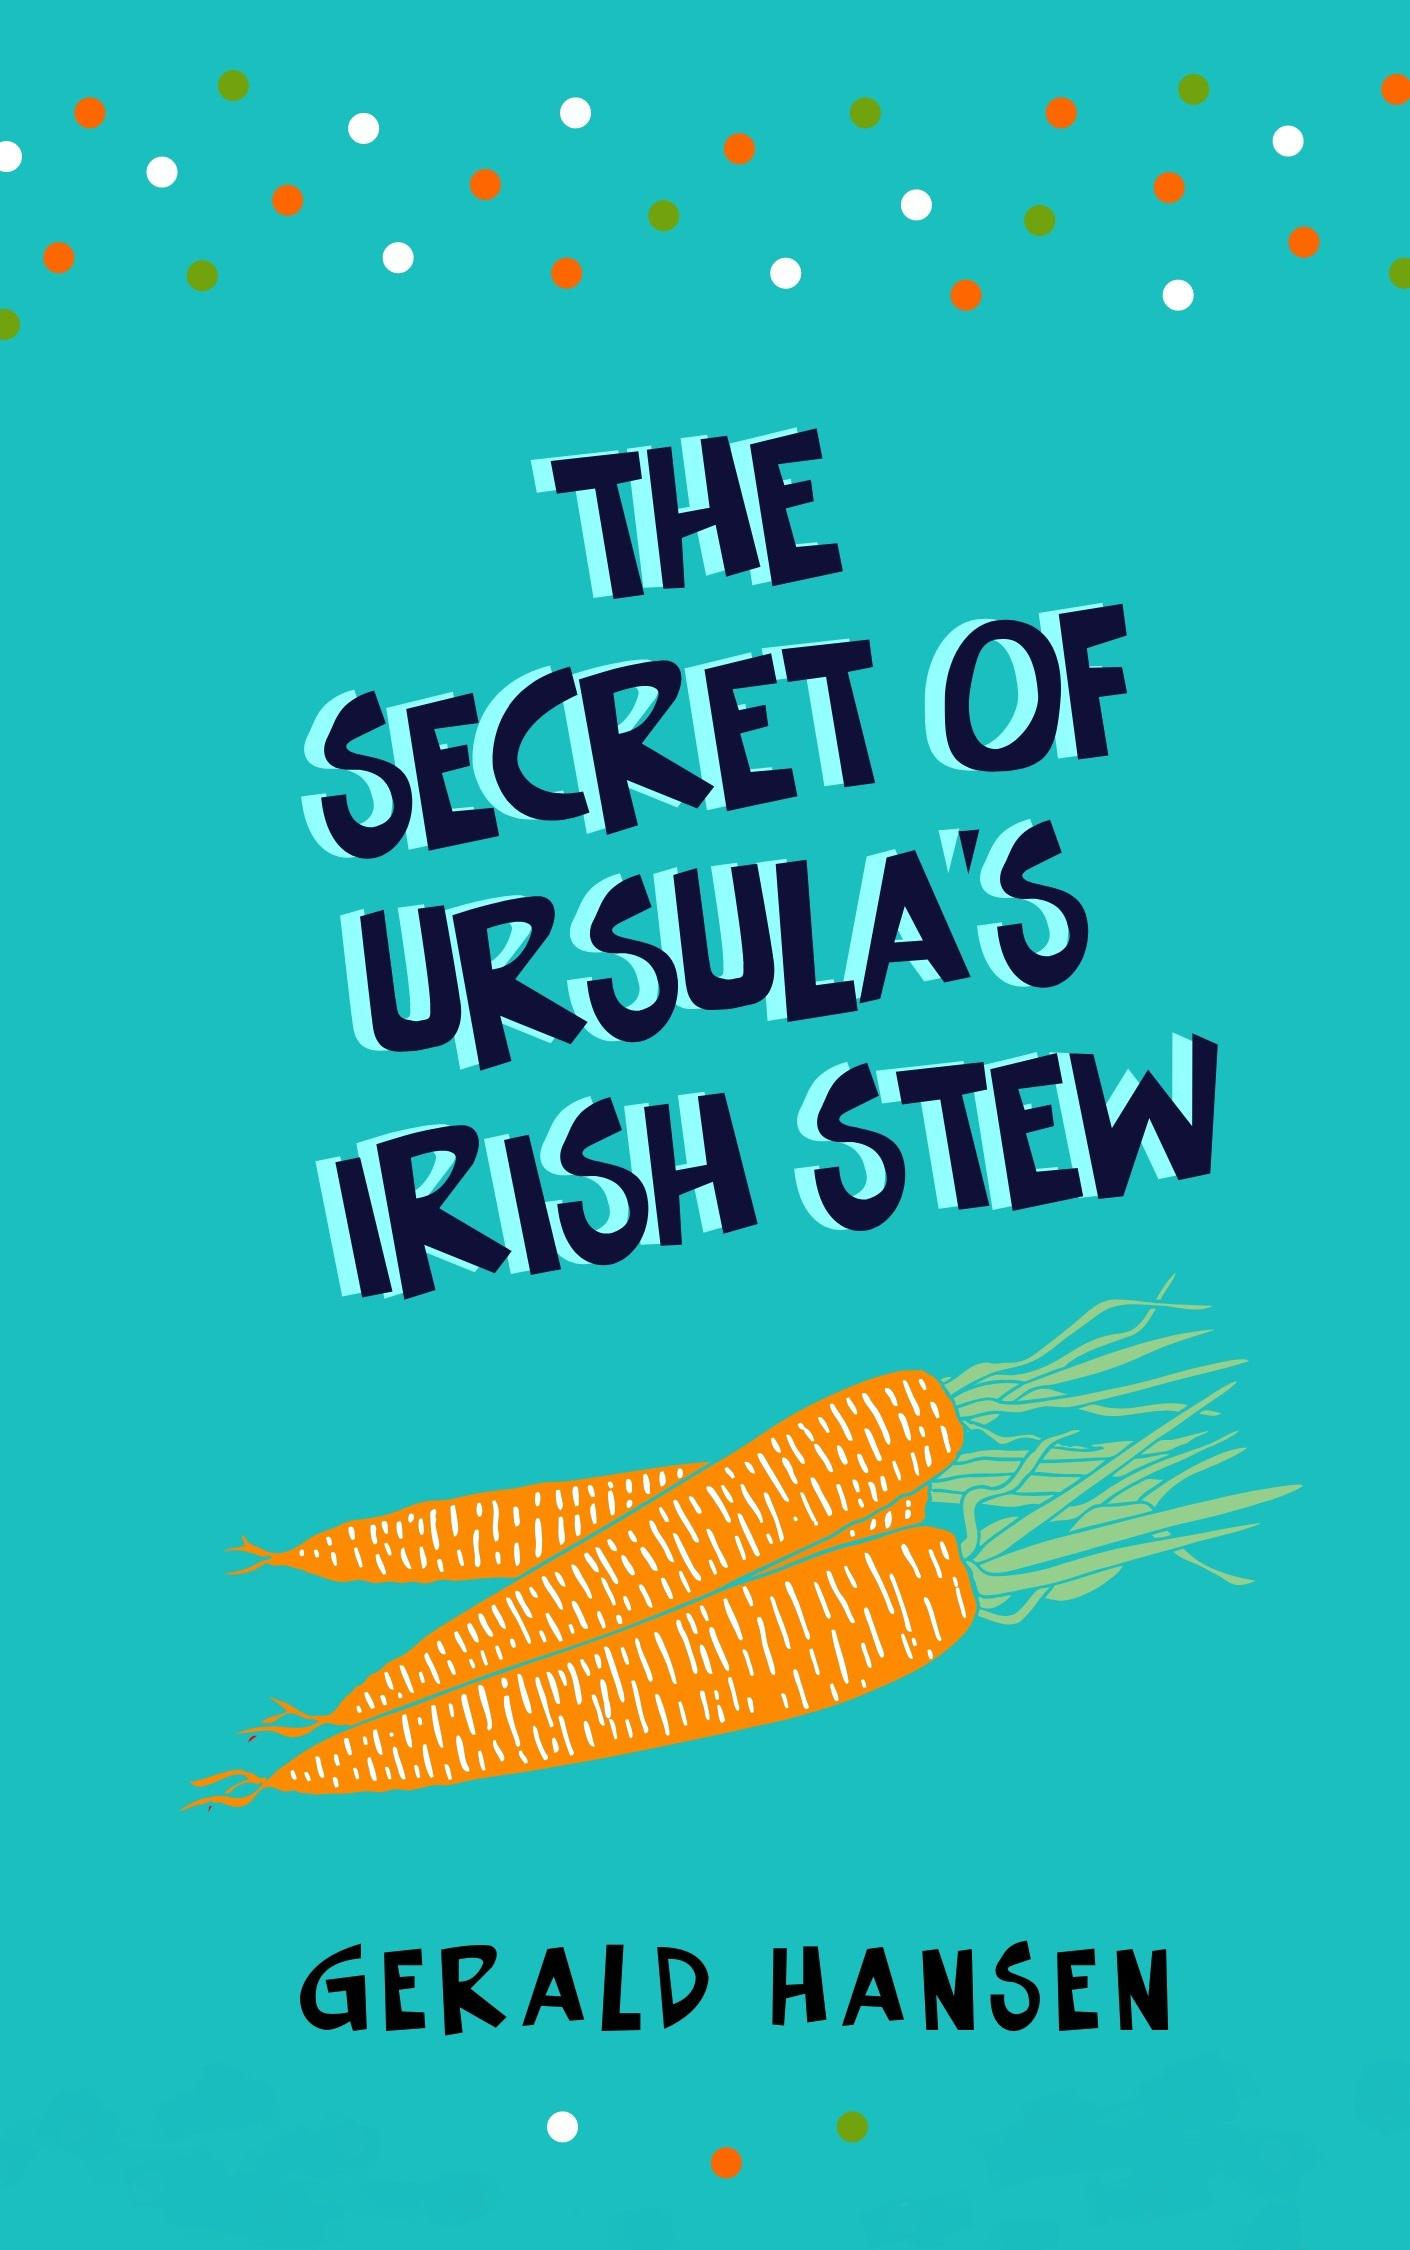 The Secret of Ursula's Irish Stew